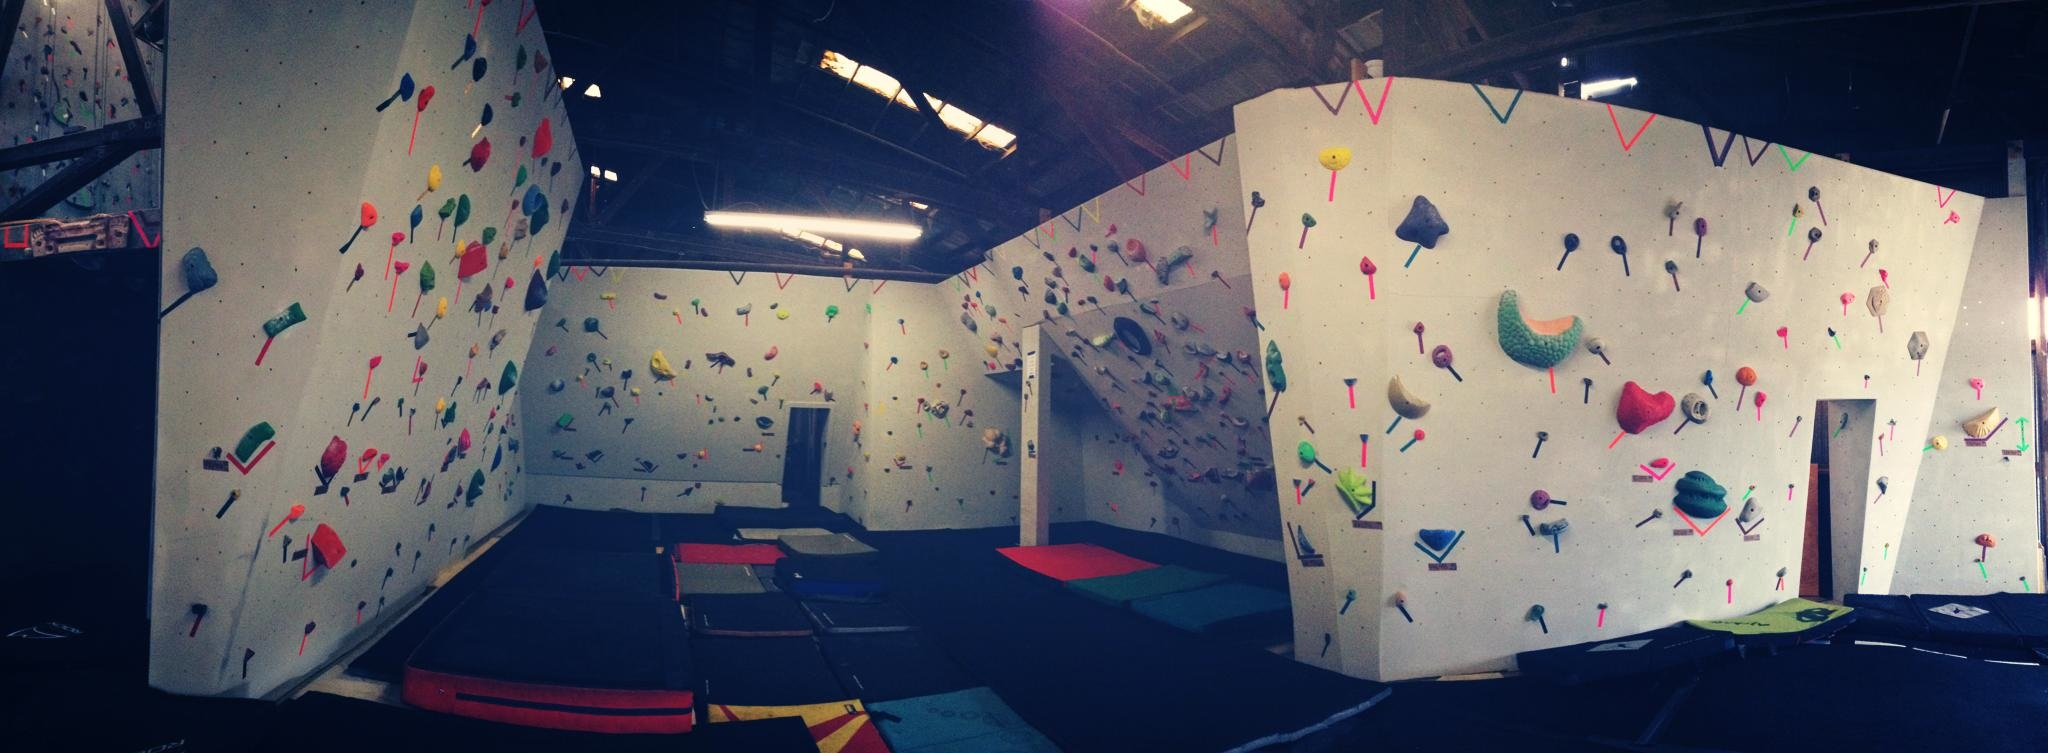 A first look at the new bouldering section at Tallahassee Rock Gym.